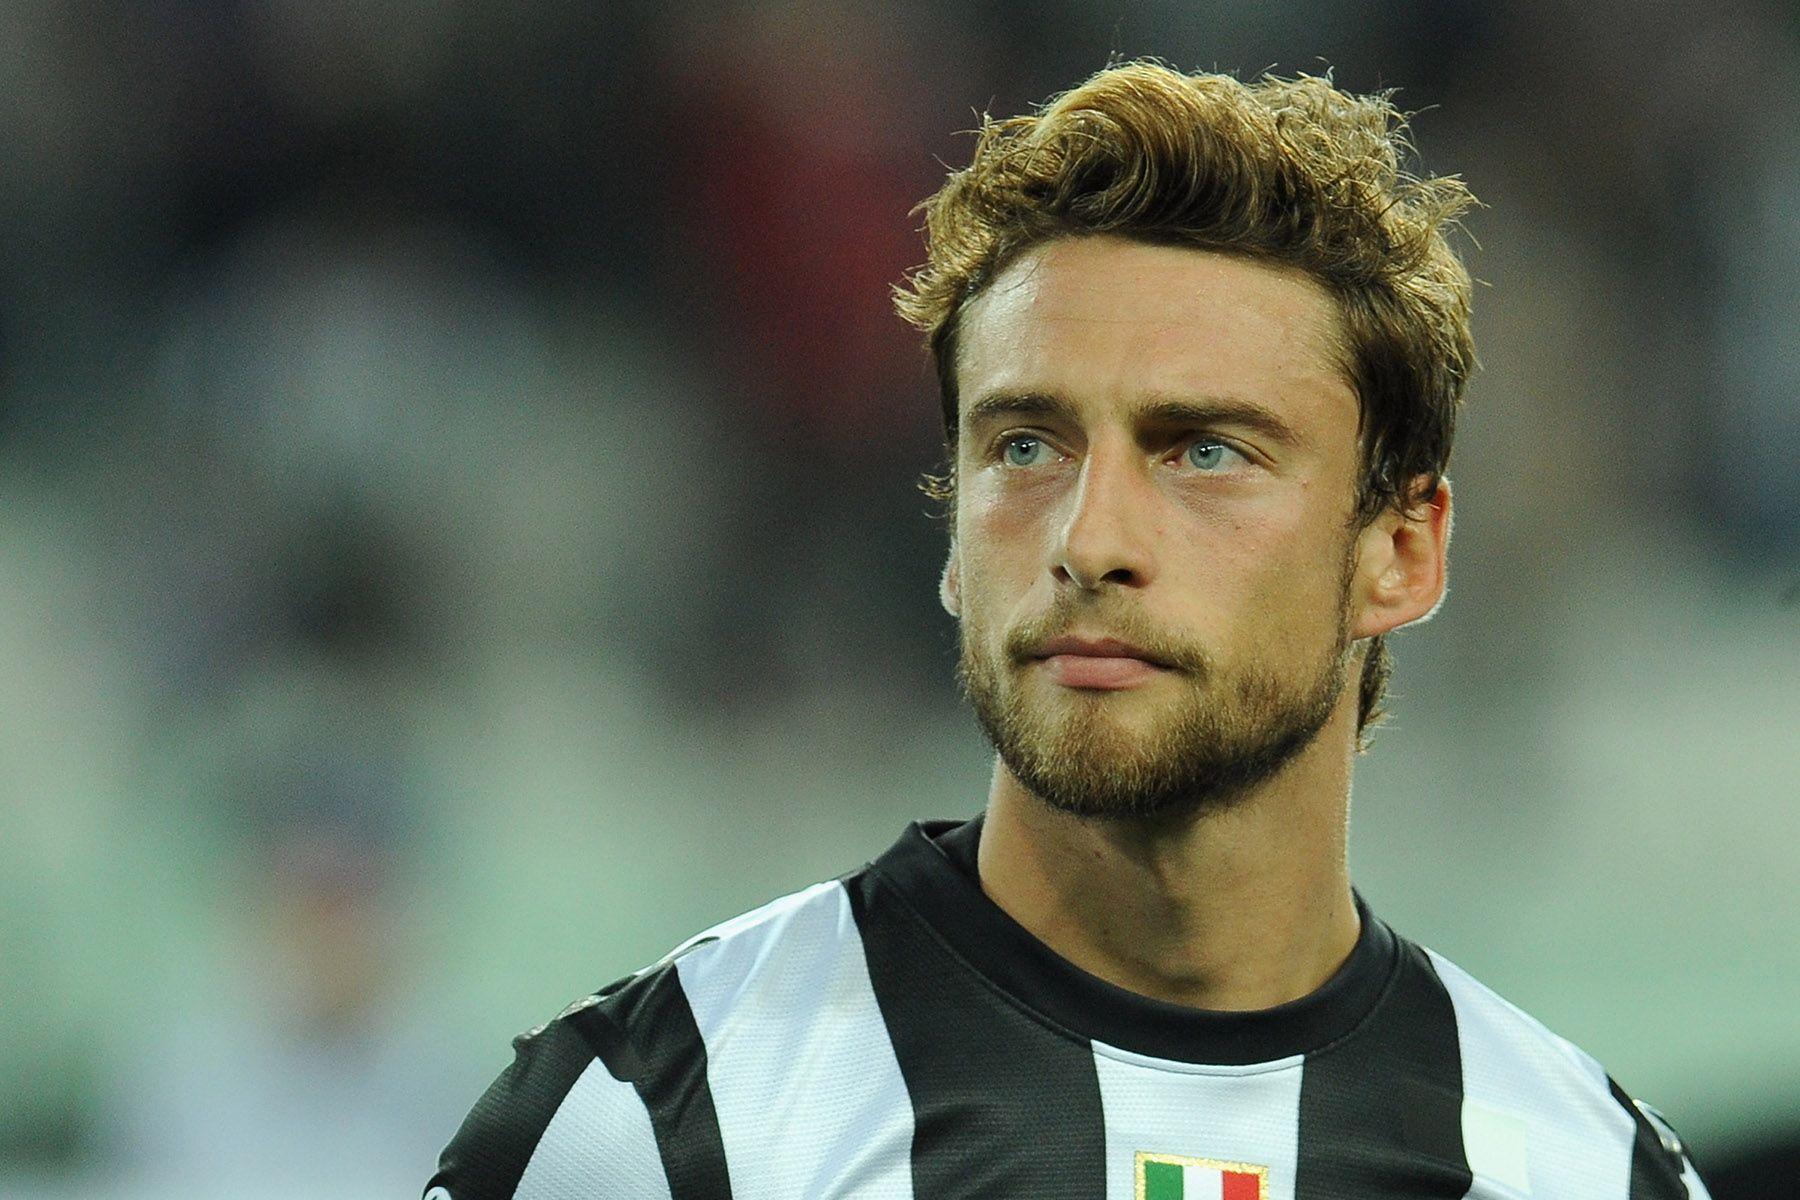 Team Italy And Juventusage 28 Known For The Italian Press Has Dubbed Him Il Principino The Litt Claudio Marchisio Best Looking Footballers Soccer Players